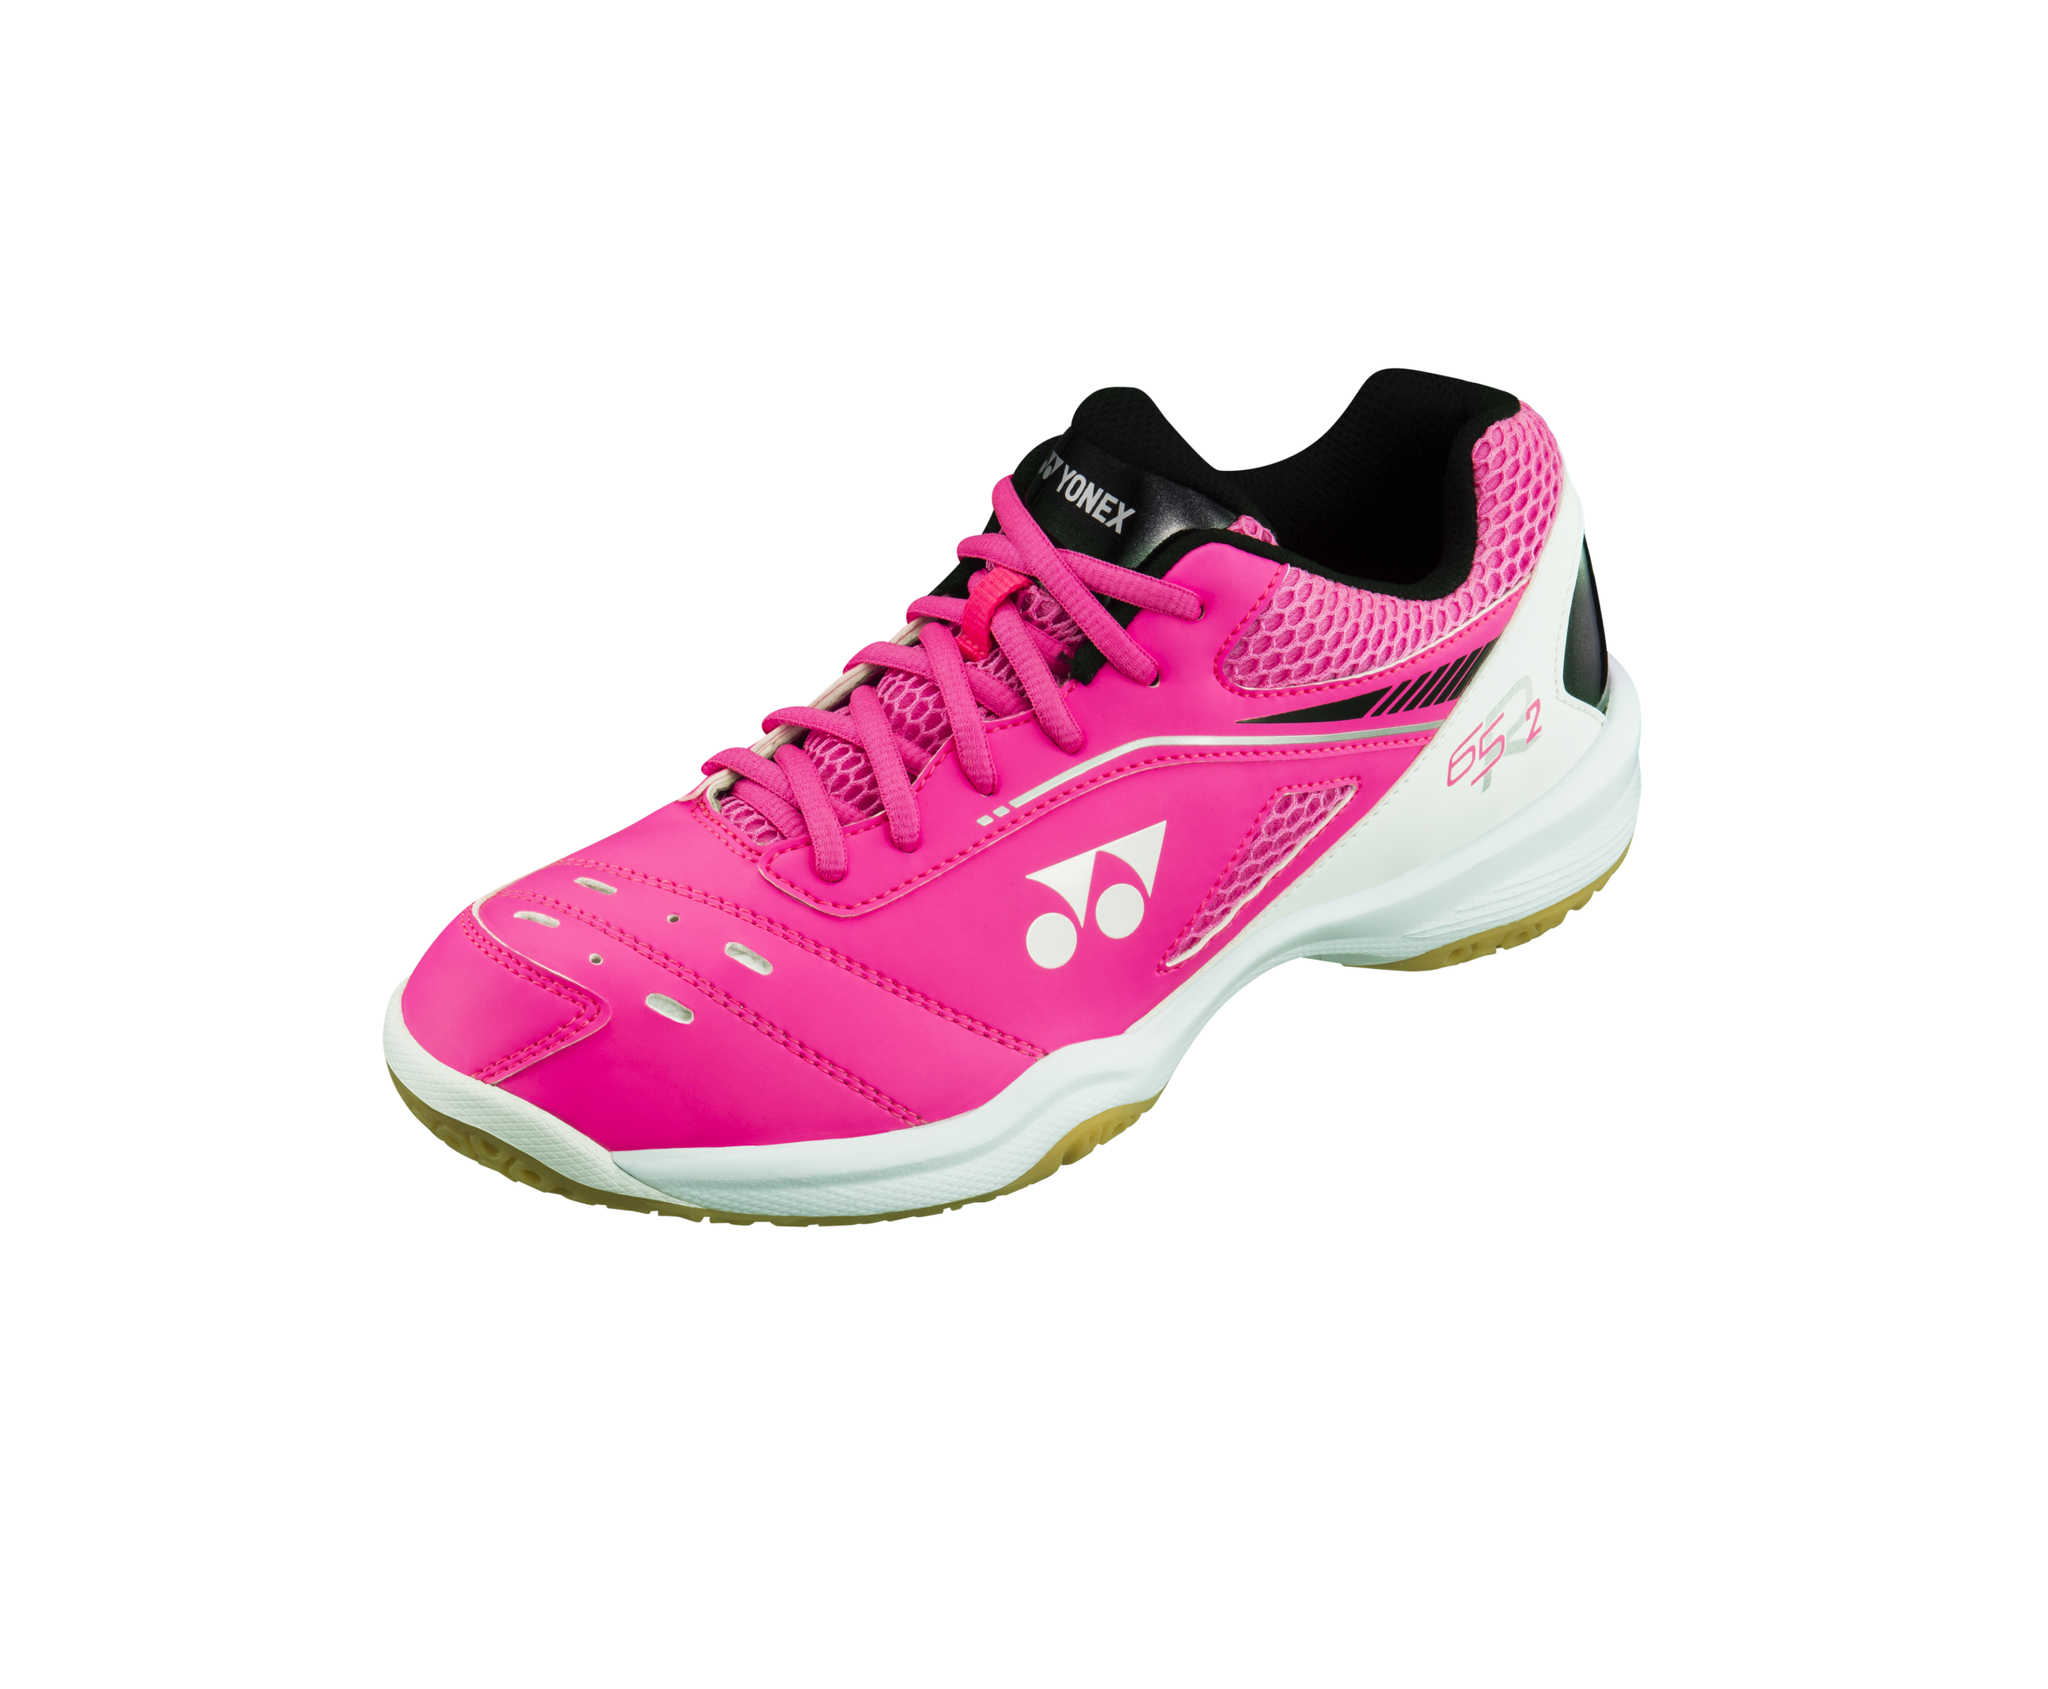 Yonex Power Cushion 65R 2 Pink